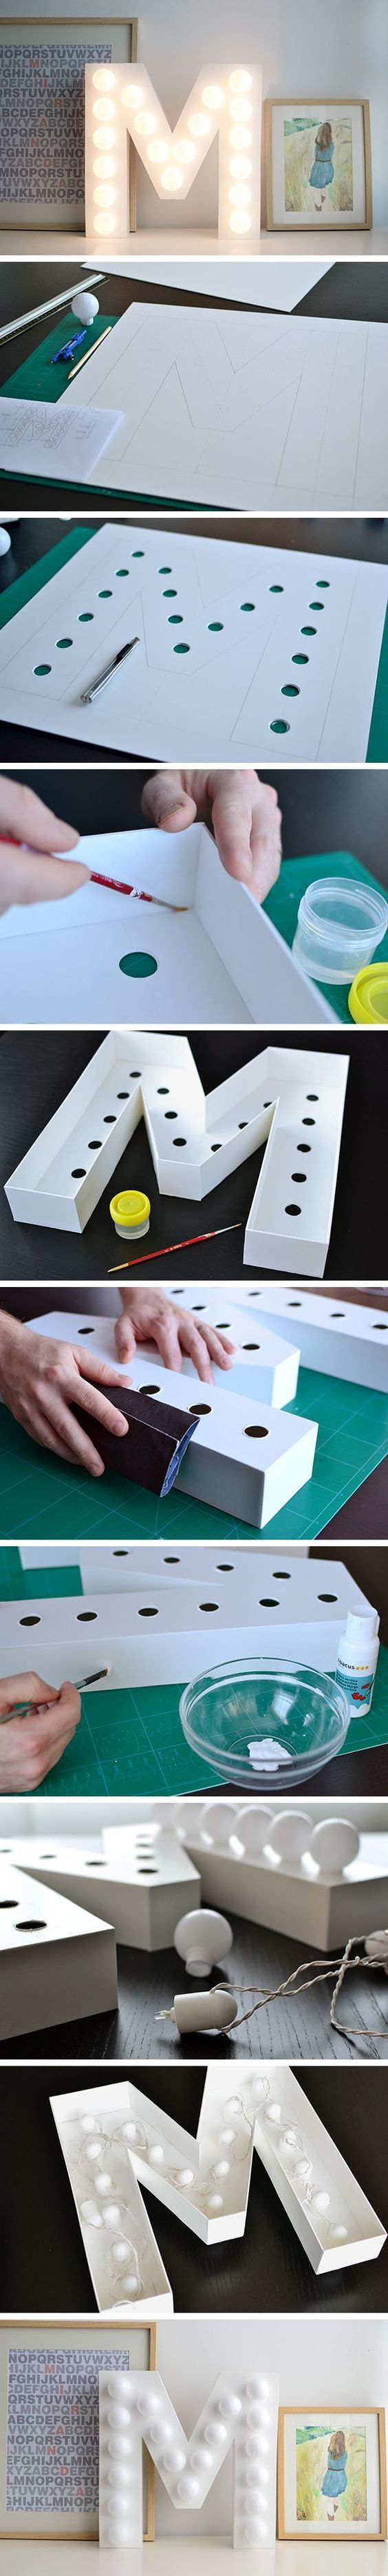 """If you've ever experienced dorm room lighting, you know it's not ideal. When we stepped into my younger sister's dorm room for the first time during her freshmen year of college, I was shocked to see some dim lights in the ceiling, but basically nothing else. No lamp by the bunk bed, no light in … Continue reading """"16 Clever DIY Lighting Project Ideas To Get The Best Dorm Room Ever"""""""